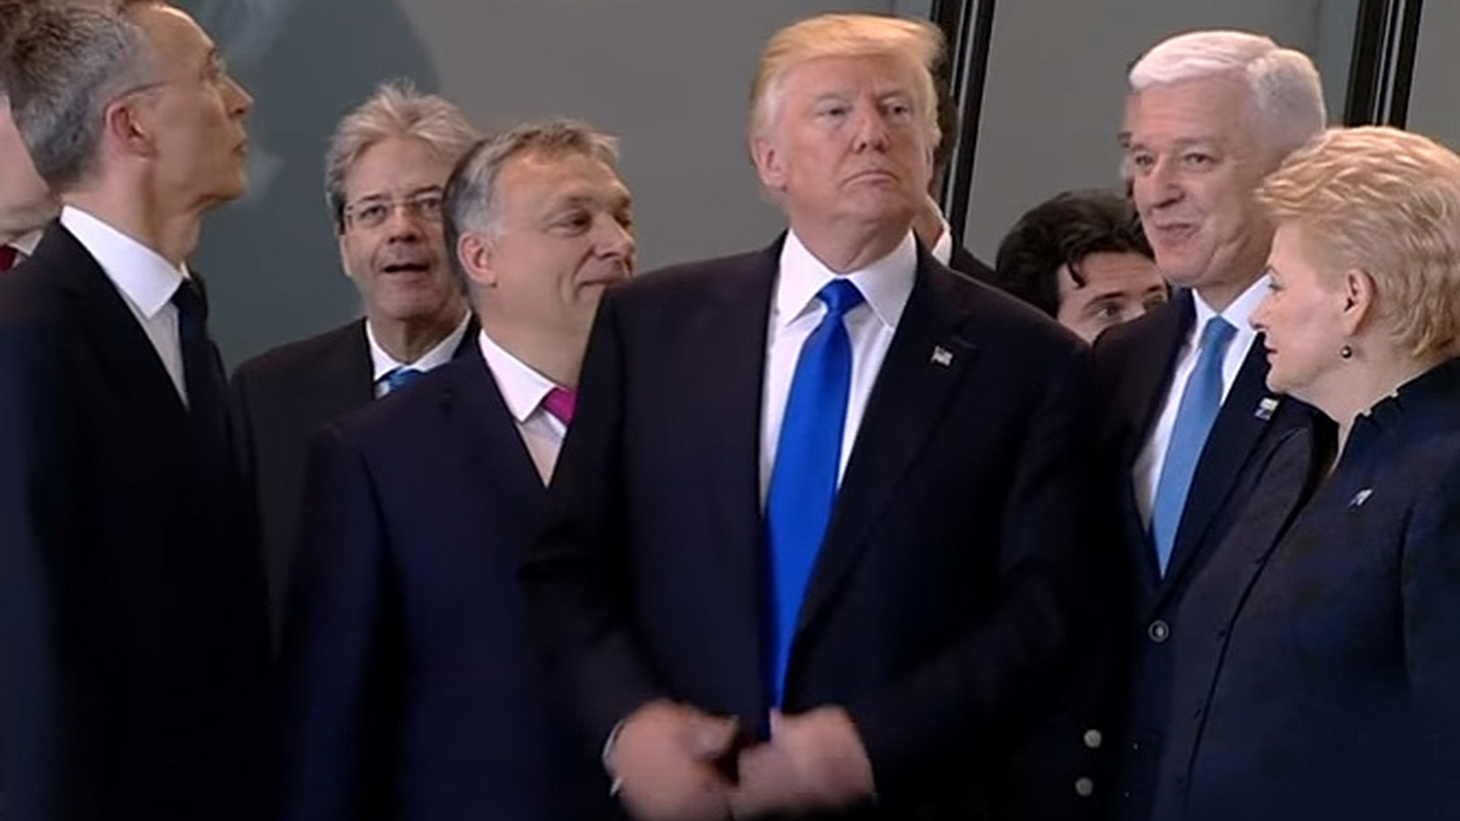 """Is President Trump taking his """"America First"""" agenda to extremes, withdrawing the country from the international stage on trade and climate change, distancing America from its traditional allies across the Atlantic and even threatening to physically isolate the country through the building of a wall along its southern border? León Krauzeguest hosts."""